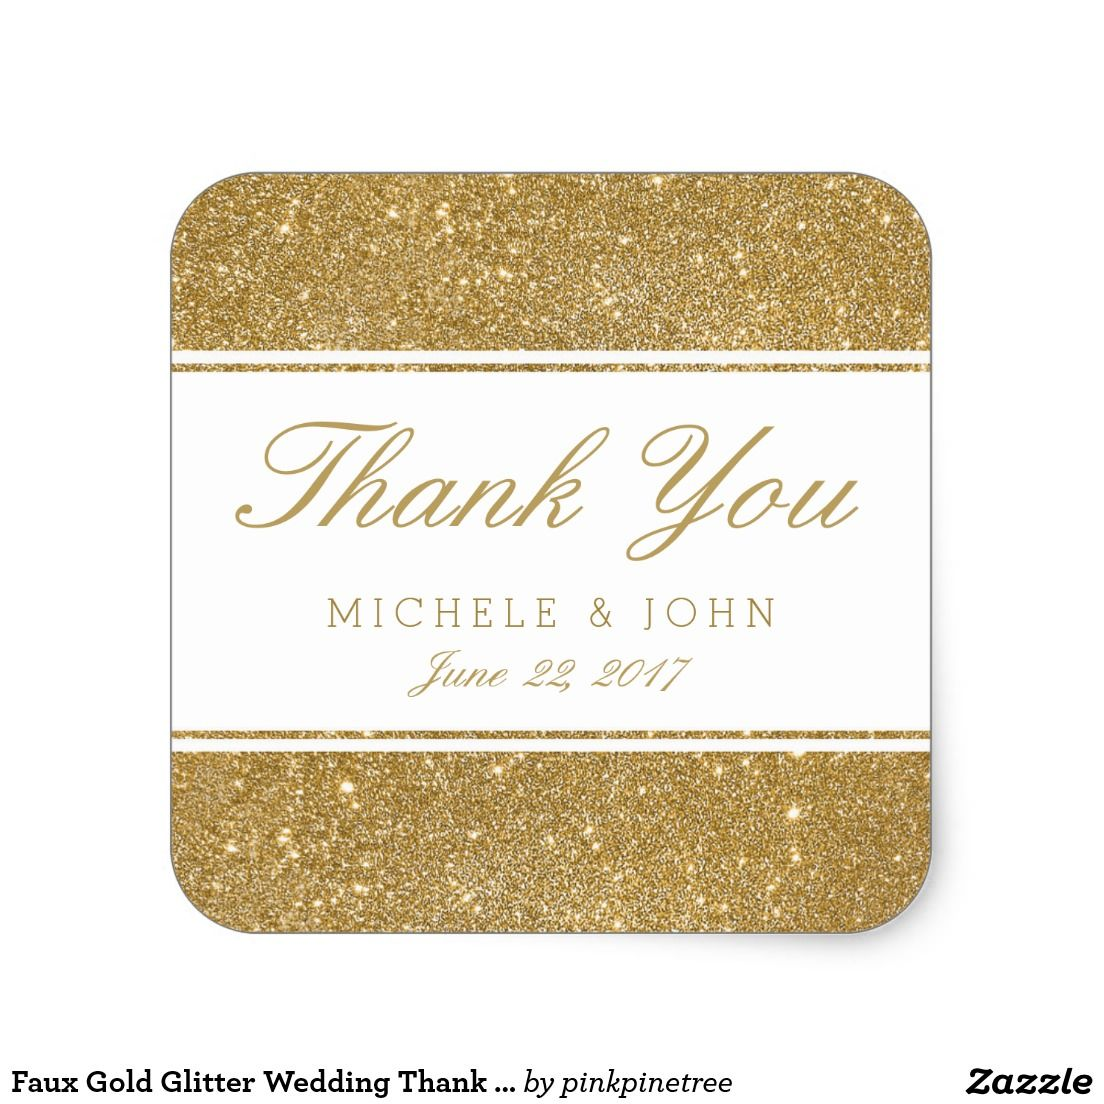 Faux Gold Glitter Wedding Thank You Favor Stickers | wedding favor ...